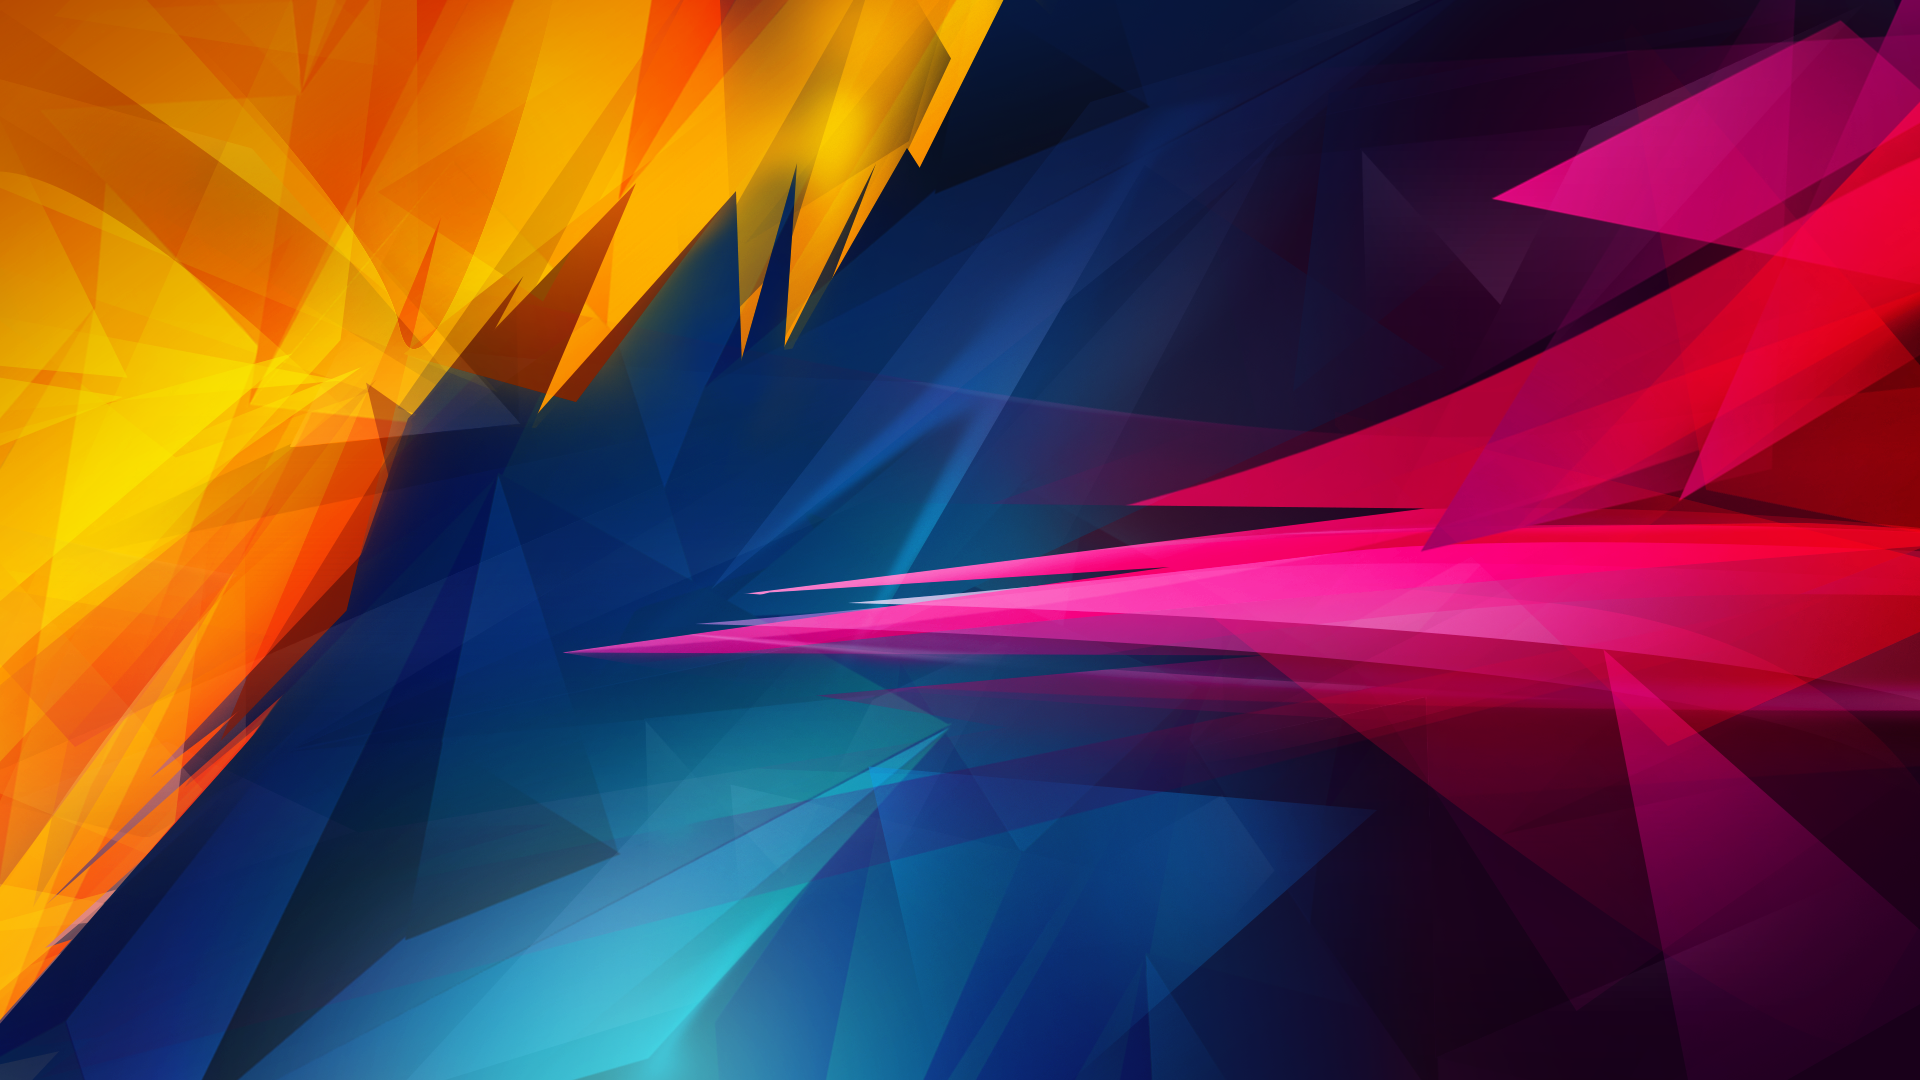 HD Wallpapers Abstract wallpapers HD desktop backgrounds 1920x1080